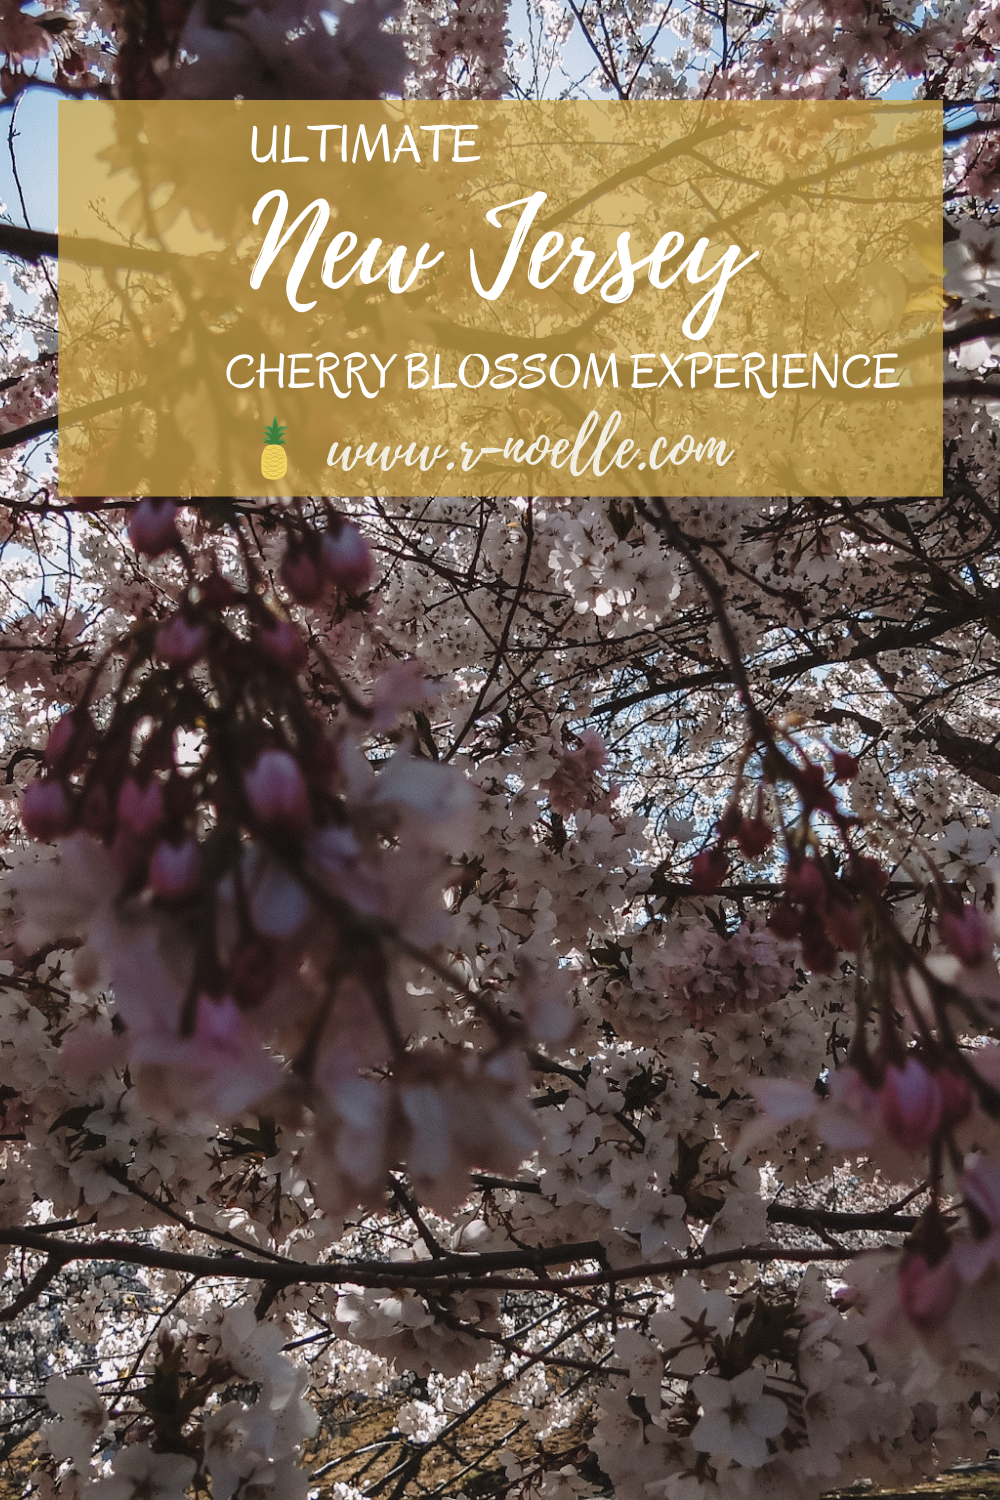 Branch Brook Park is famous for their cherry blossom festivals. Located in in Newark, New Jersey! Whether you drive, take the light rail, or bus to New Jersey it is worth the distance. There are more to see than cherry blossoms in DC!